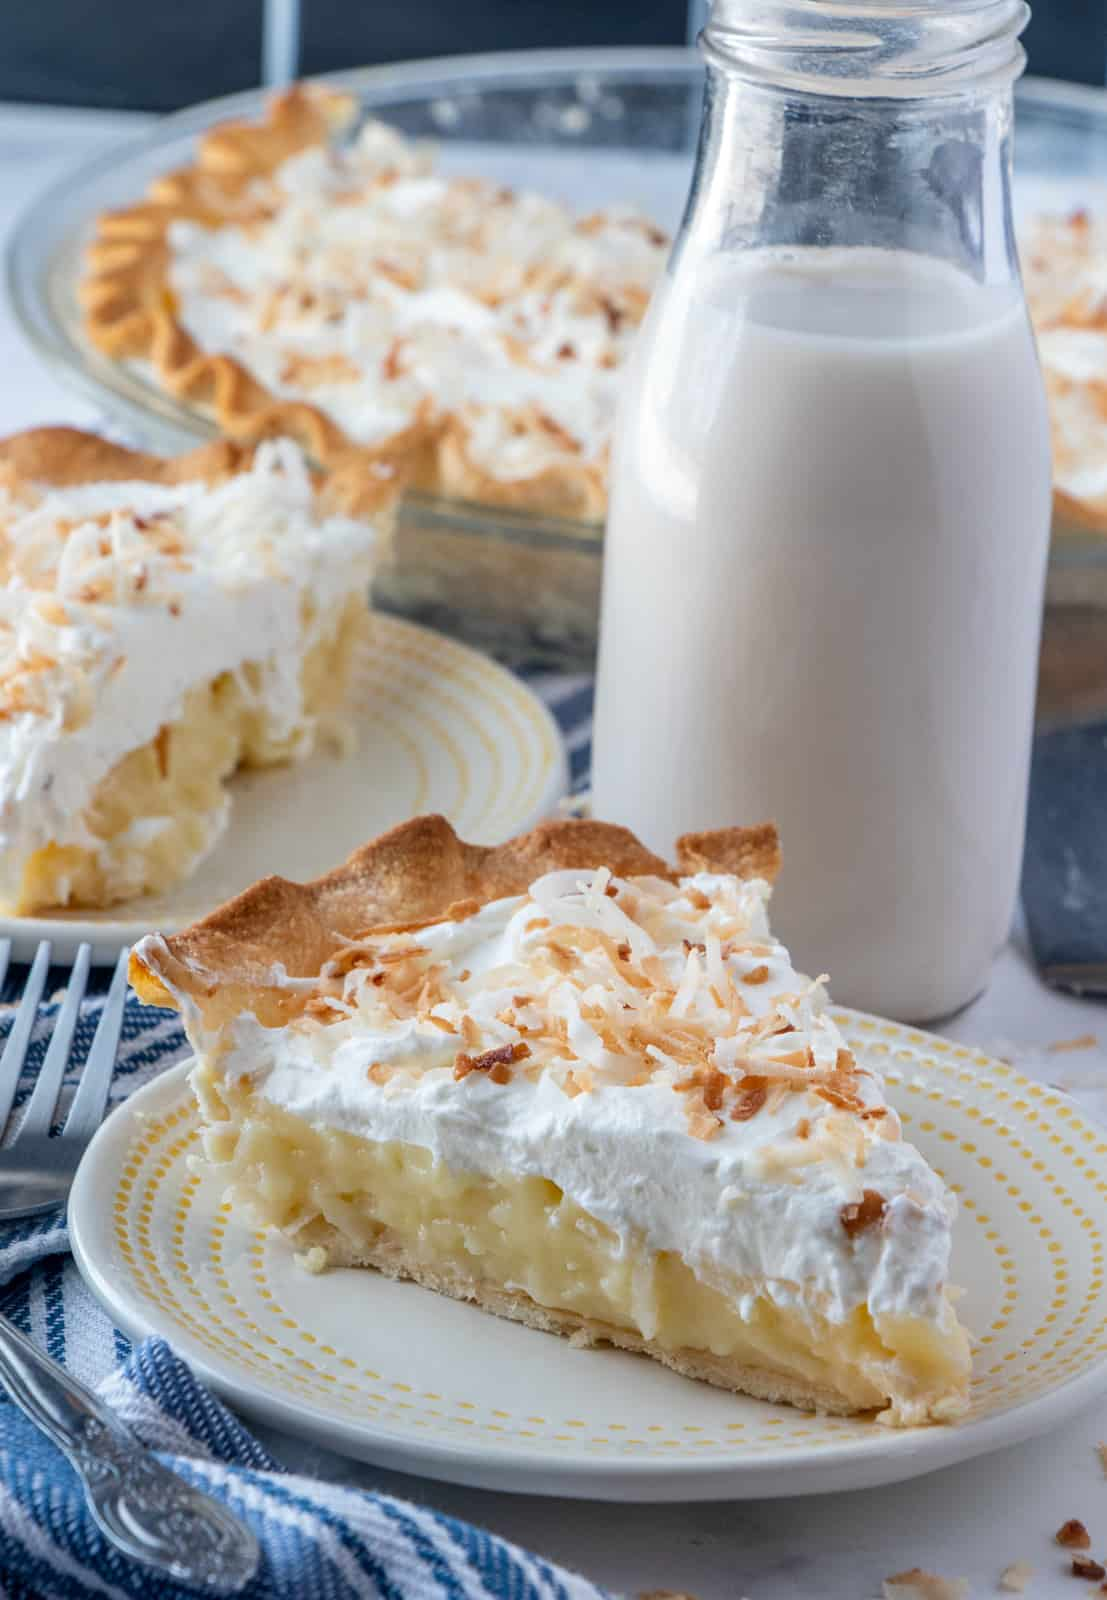 Two slices of pie on plates with cut pie in background with glass of milk